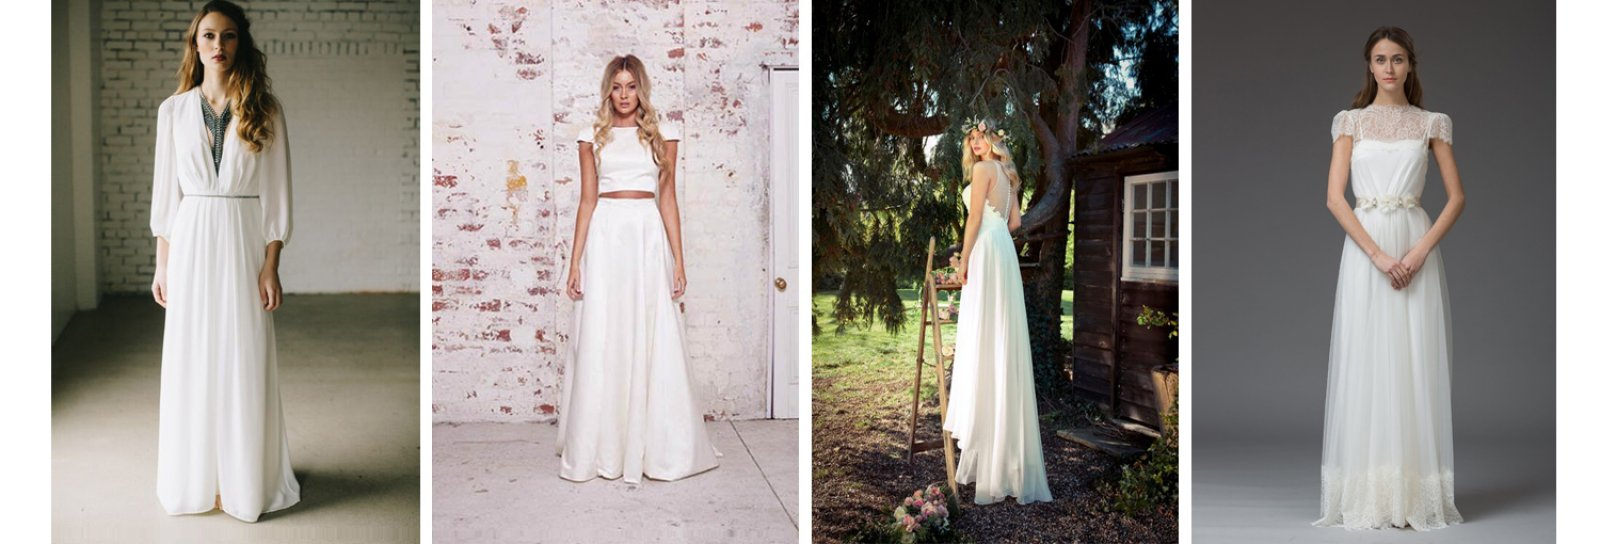 The Wild Heart Bridal - Wedding Supplier